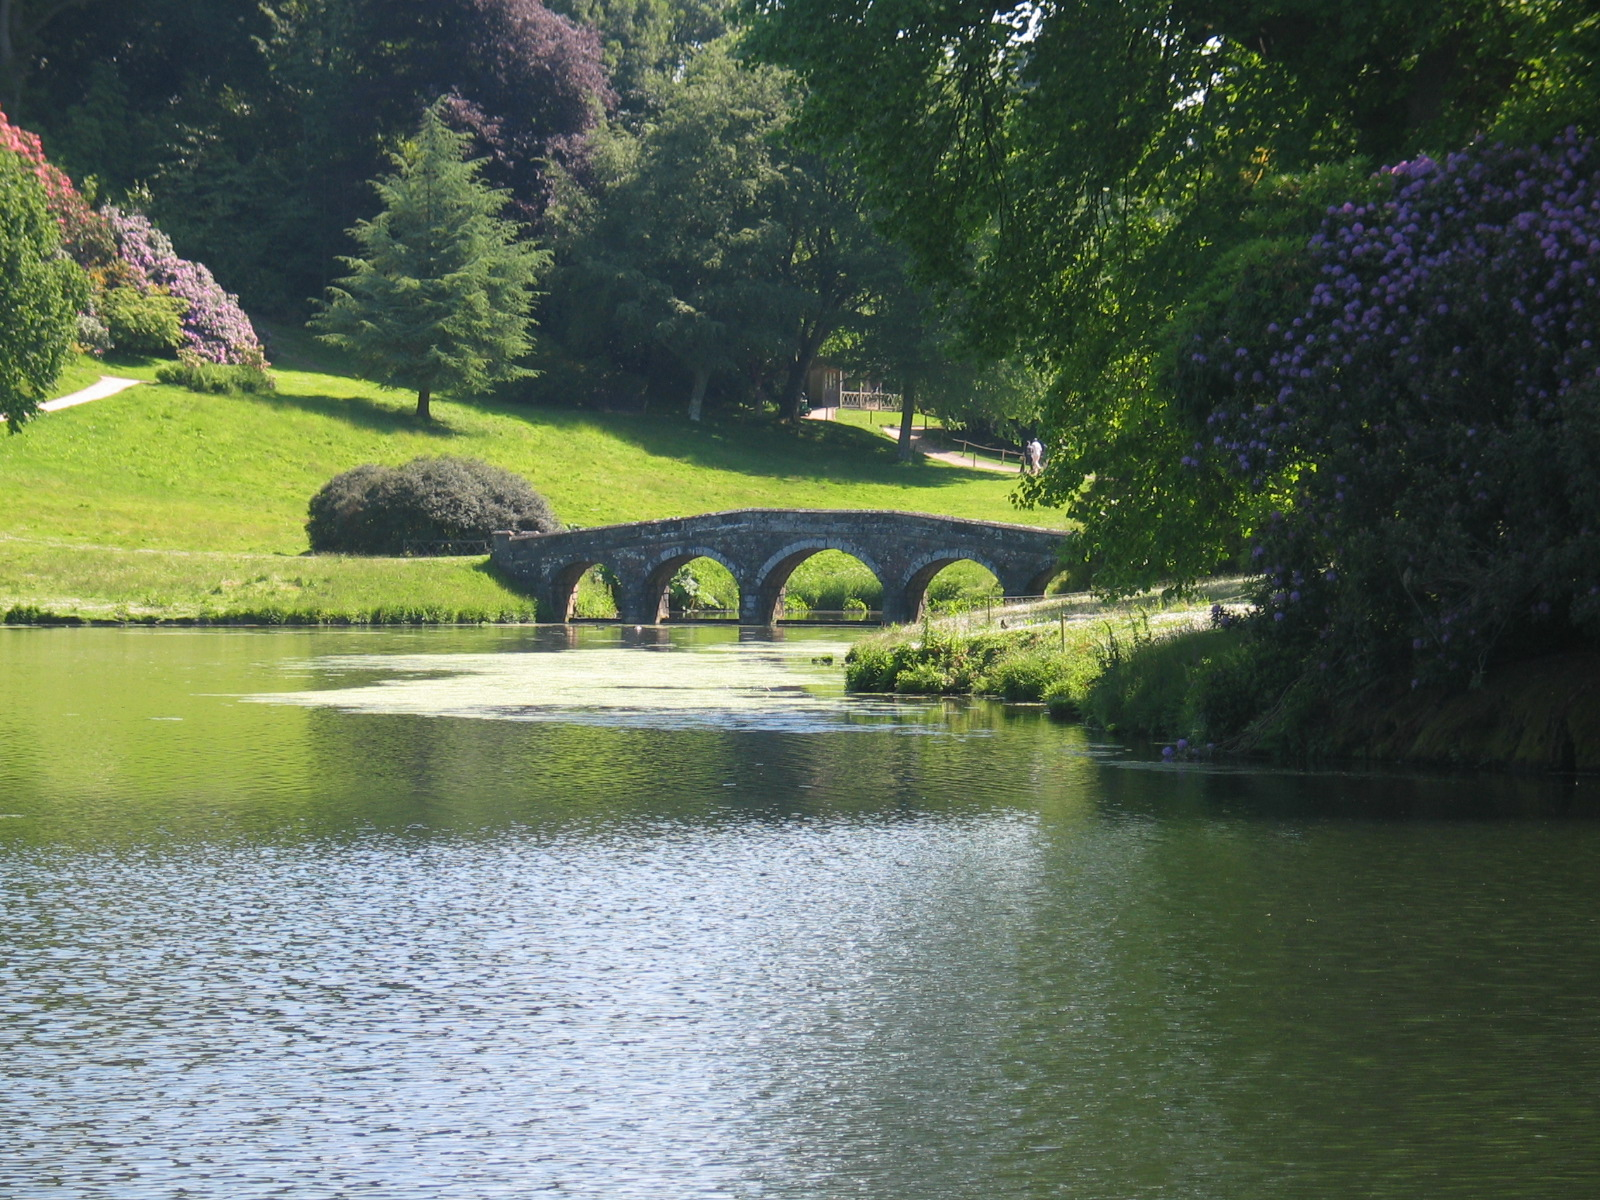 The palladium bridge at Stourhead in England, a classic English garden.